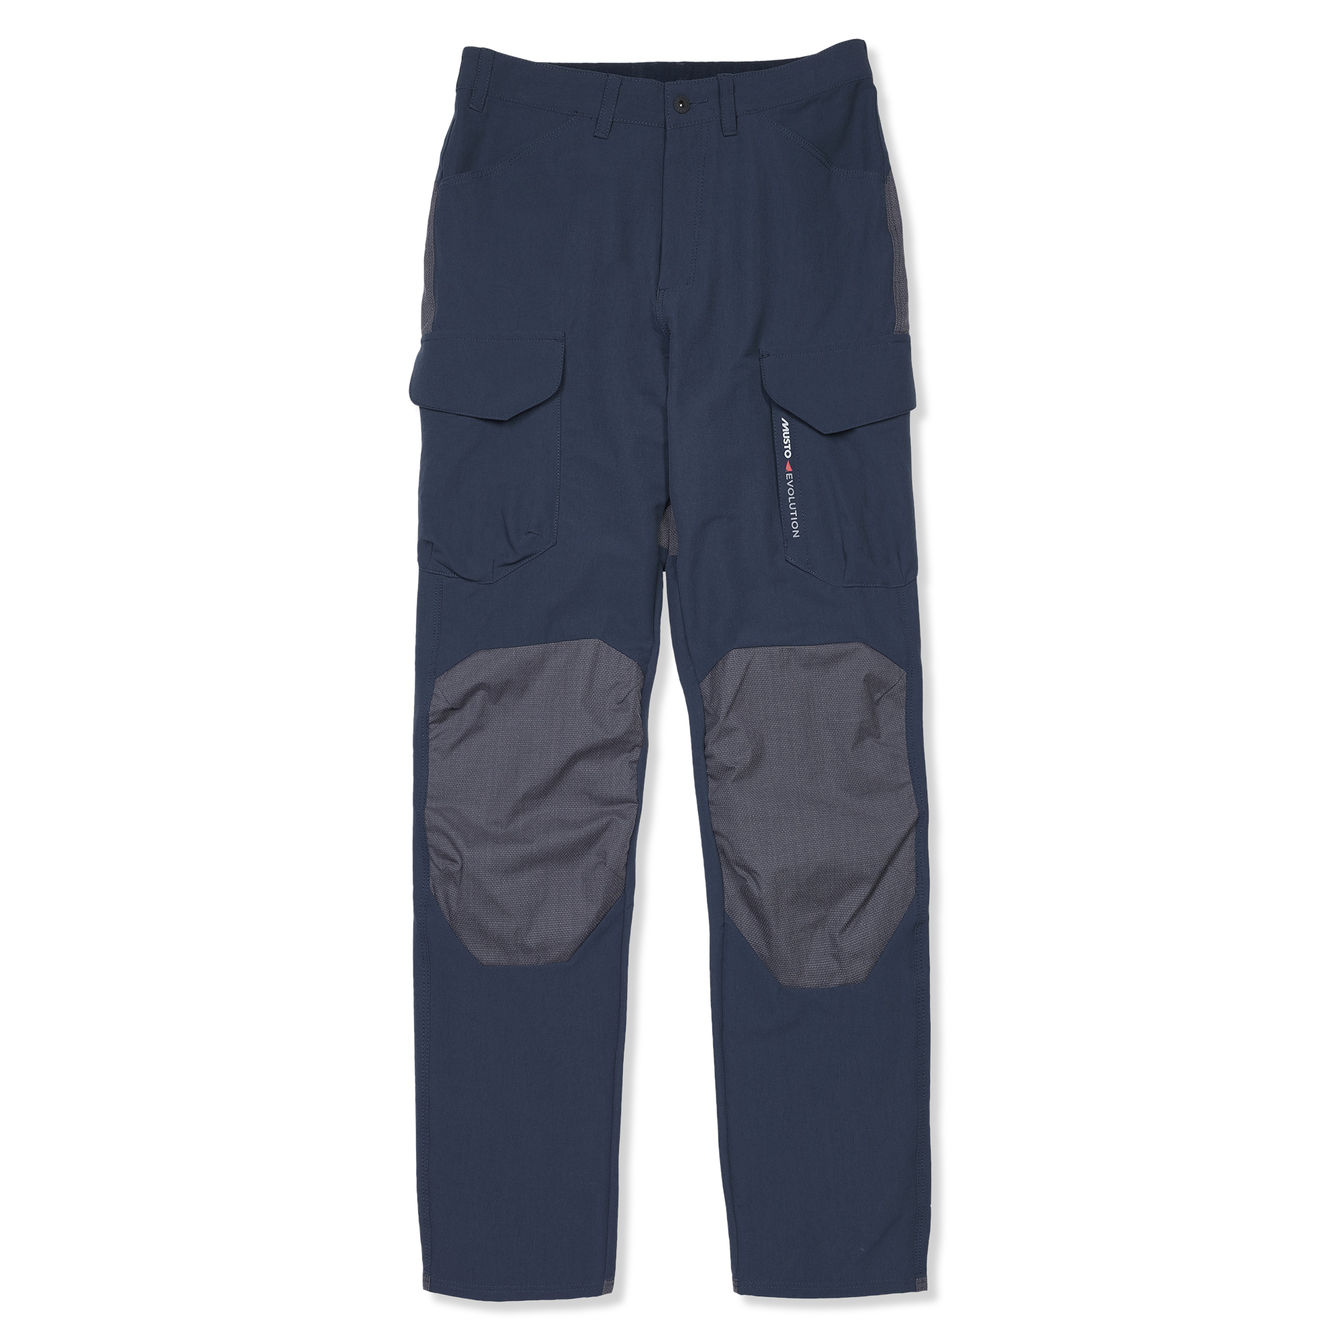 EVO PERFORMANCE UV TROUSERS